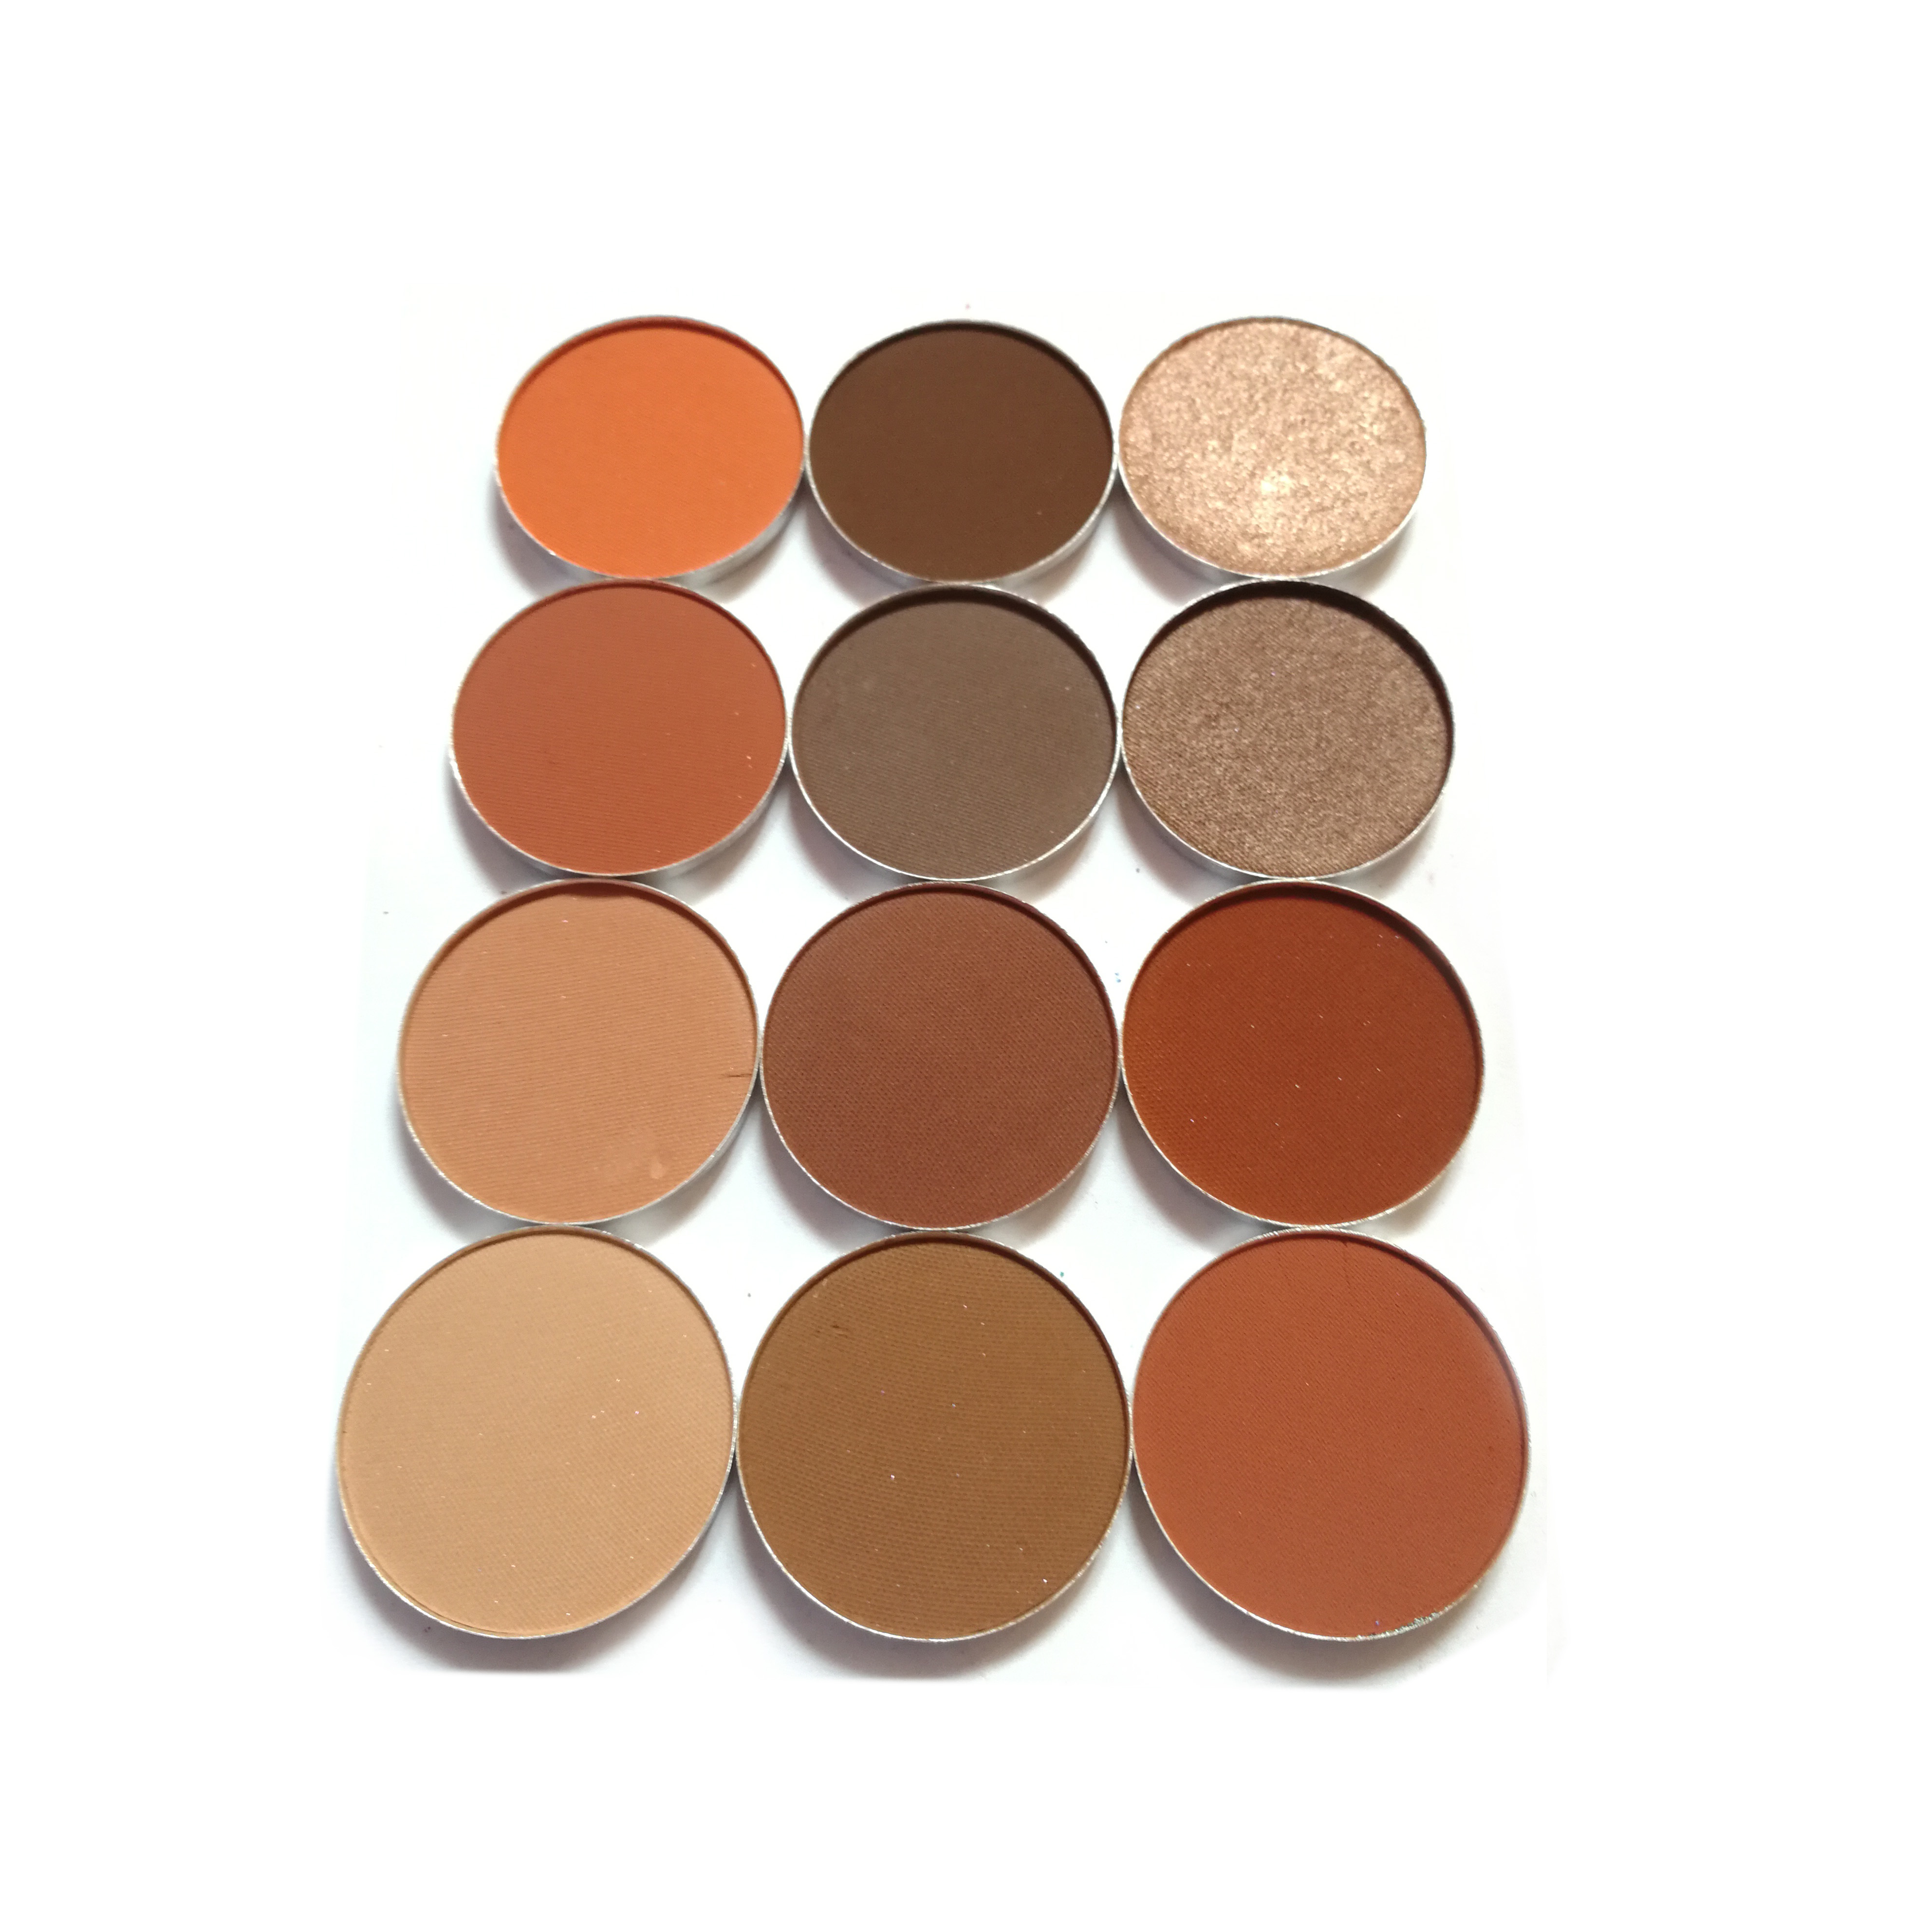 Steady 2018 New Professional Ubub Brand Eye Color Cosmetics Waterproof Pigment Double Color Shimmer Nude Eyeshadow Makeup Palette Beauty & Health Eye Shadow